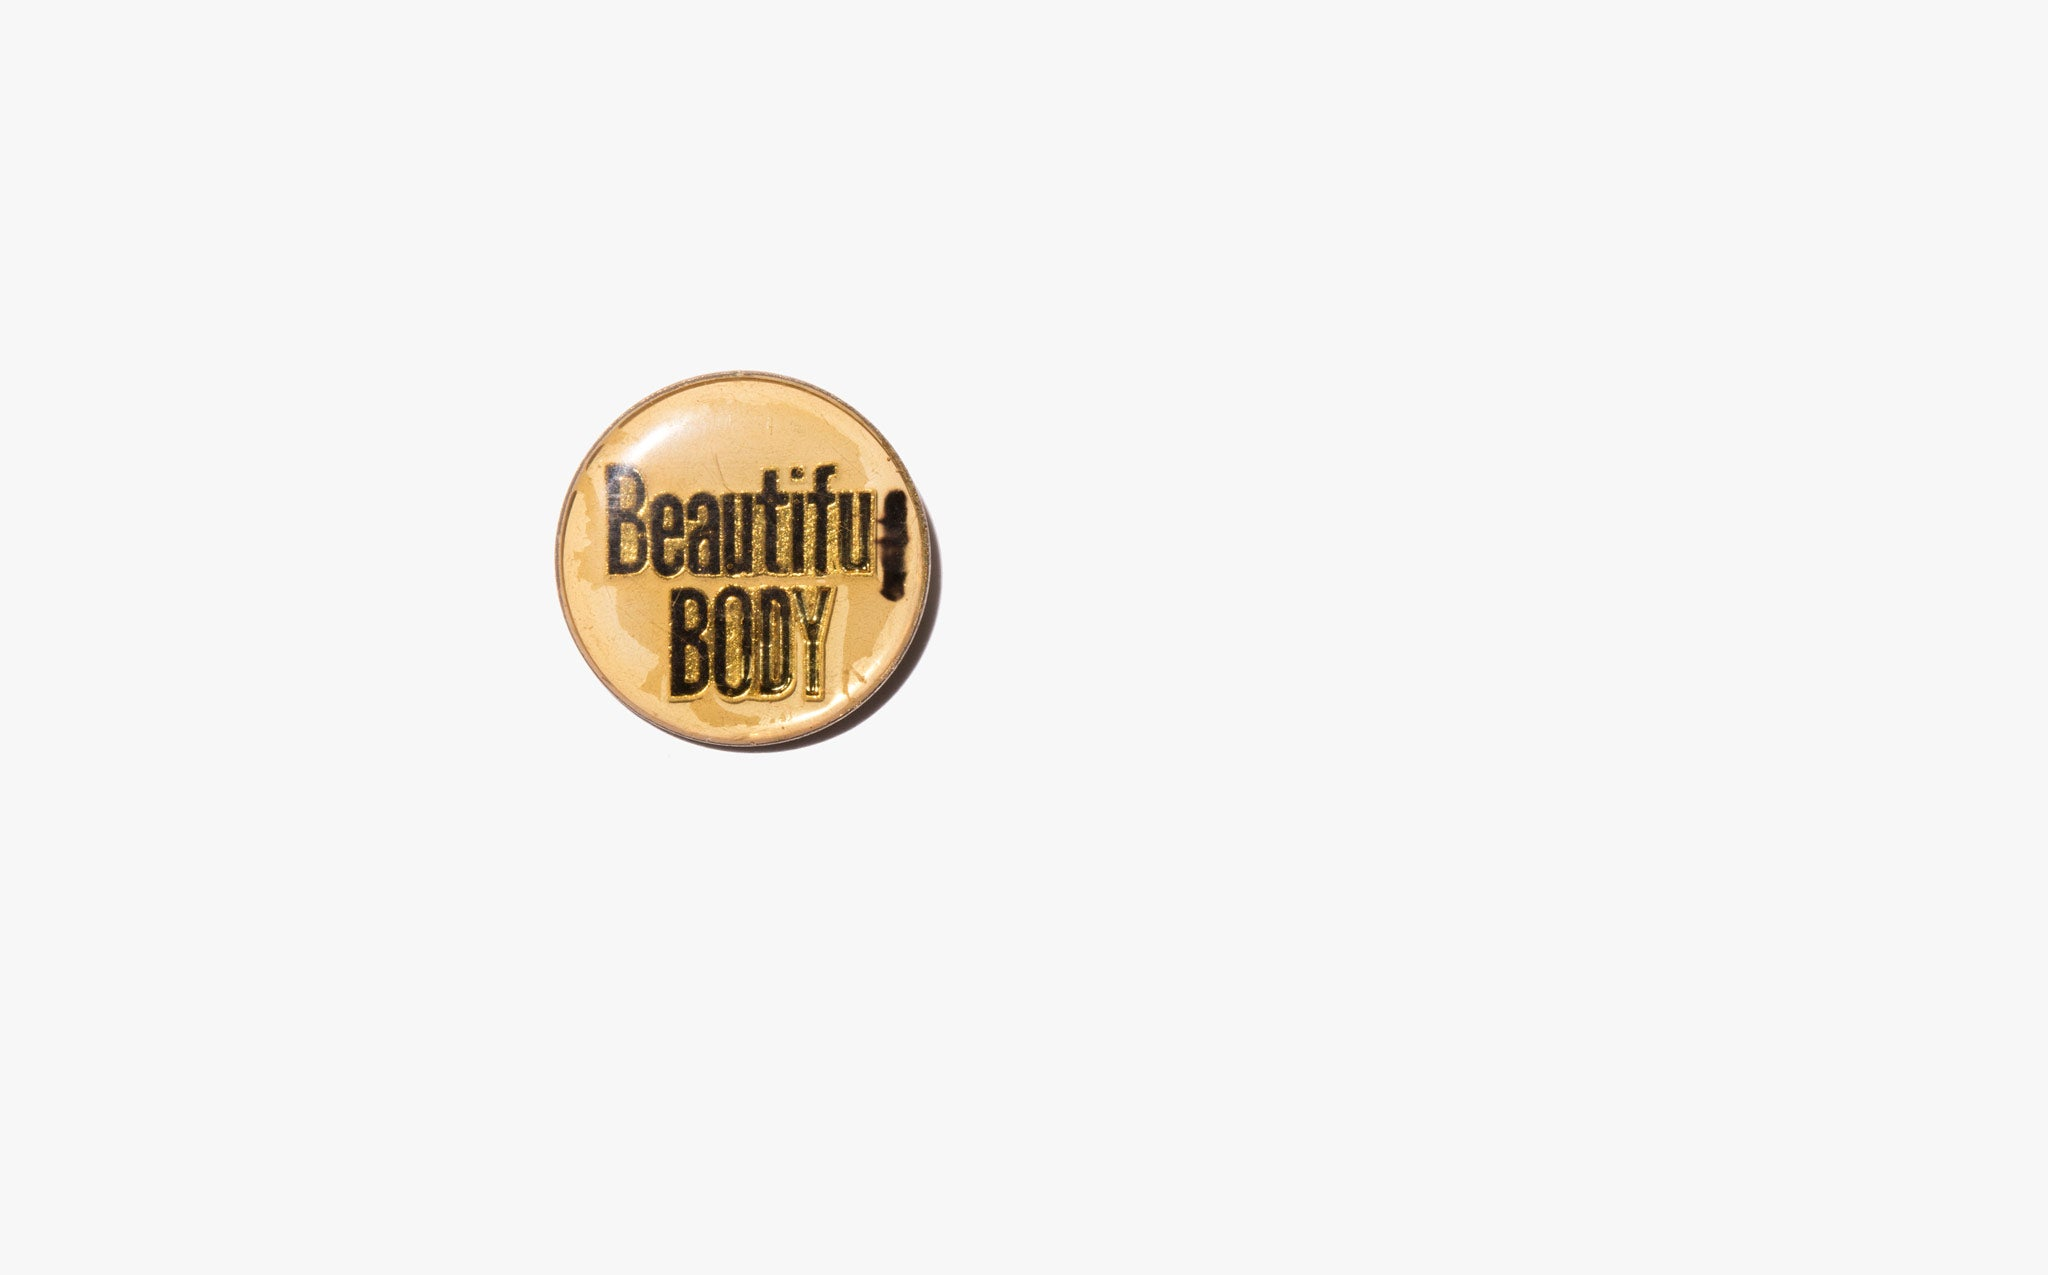 Beautiful Body Vintage Enamel Pin